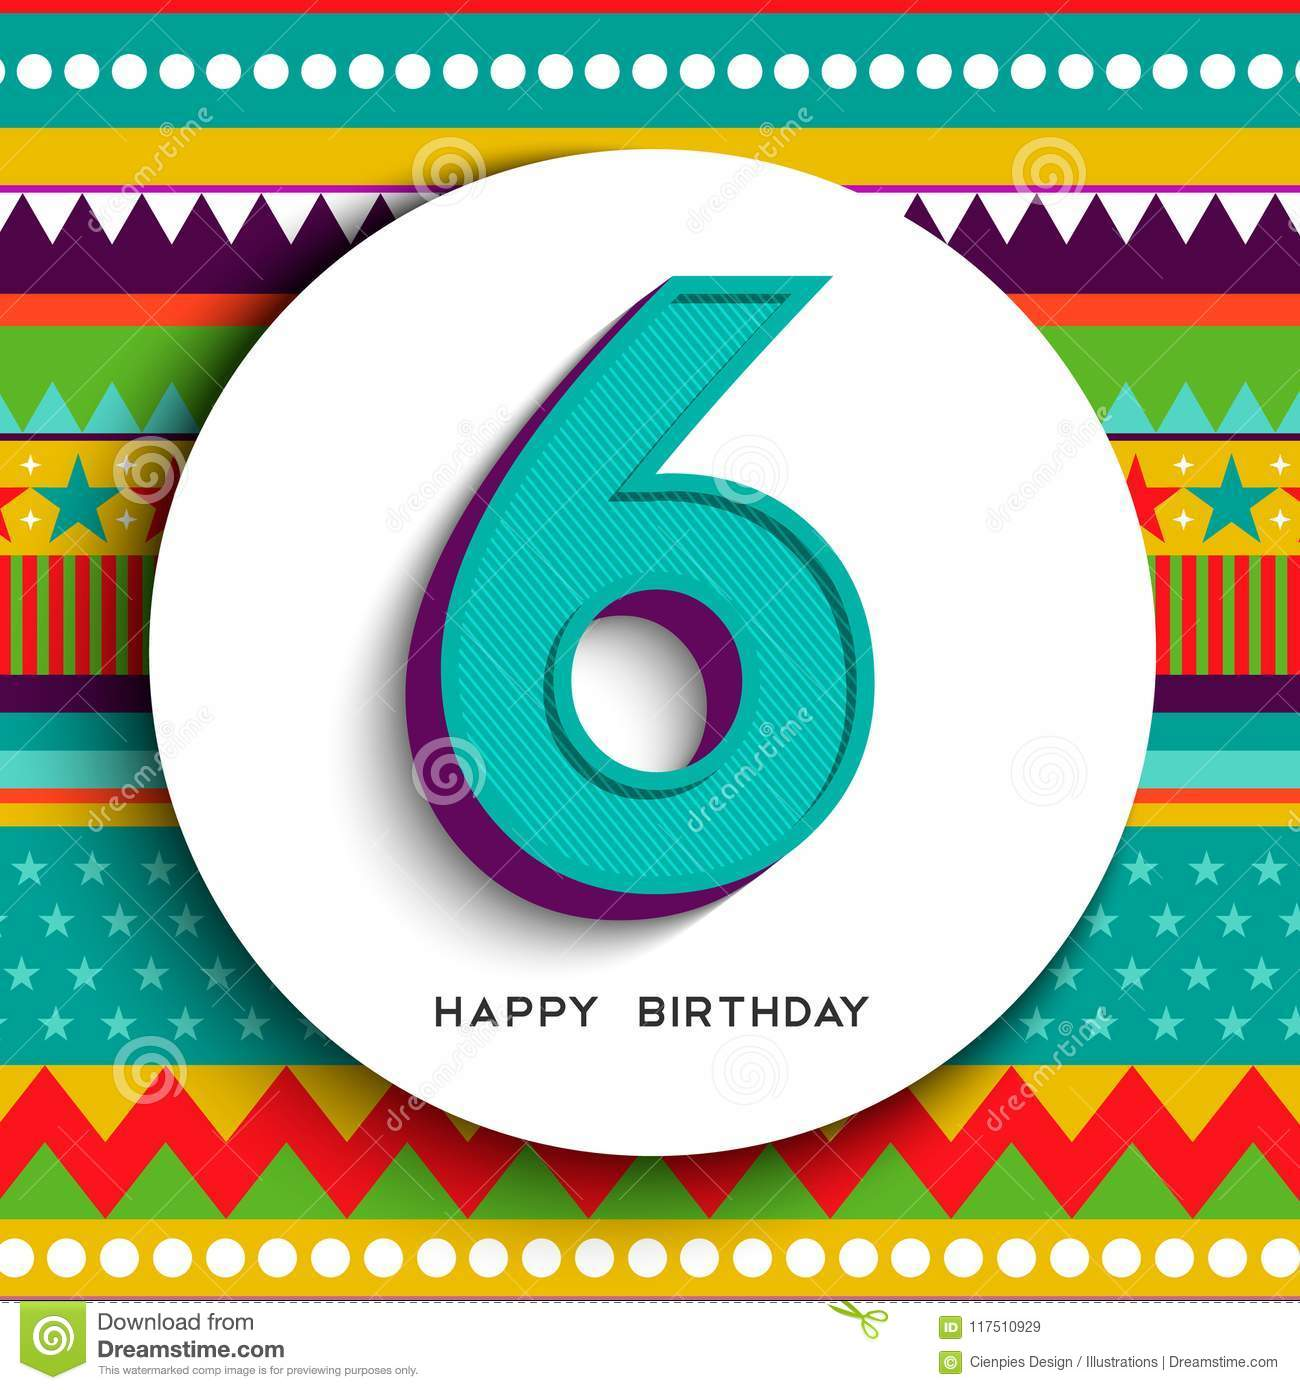 Happy Birthday Six 6 Year Fun Design With Number Text Label And Colorful Background Ideal For Party Invitation Or Greeting Card EPS10 Vector